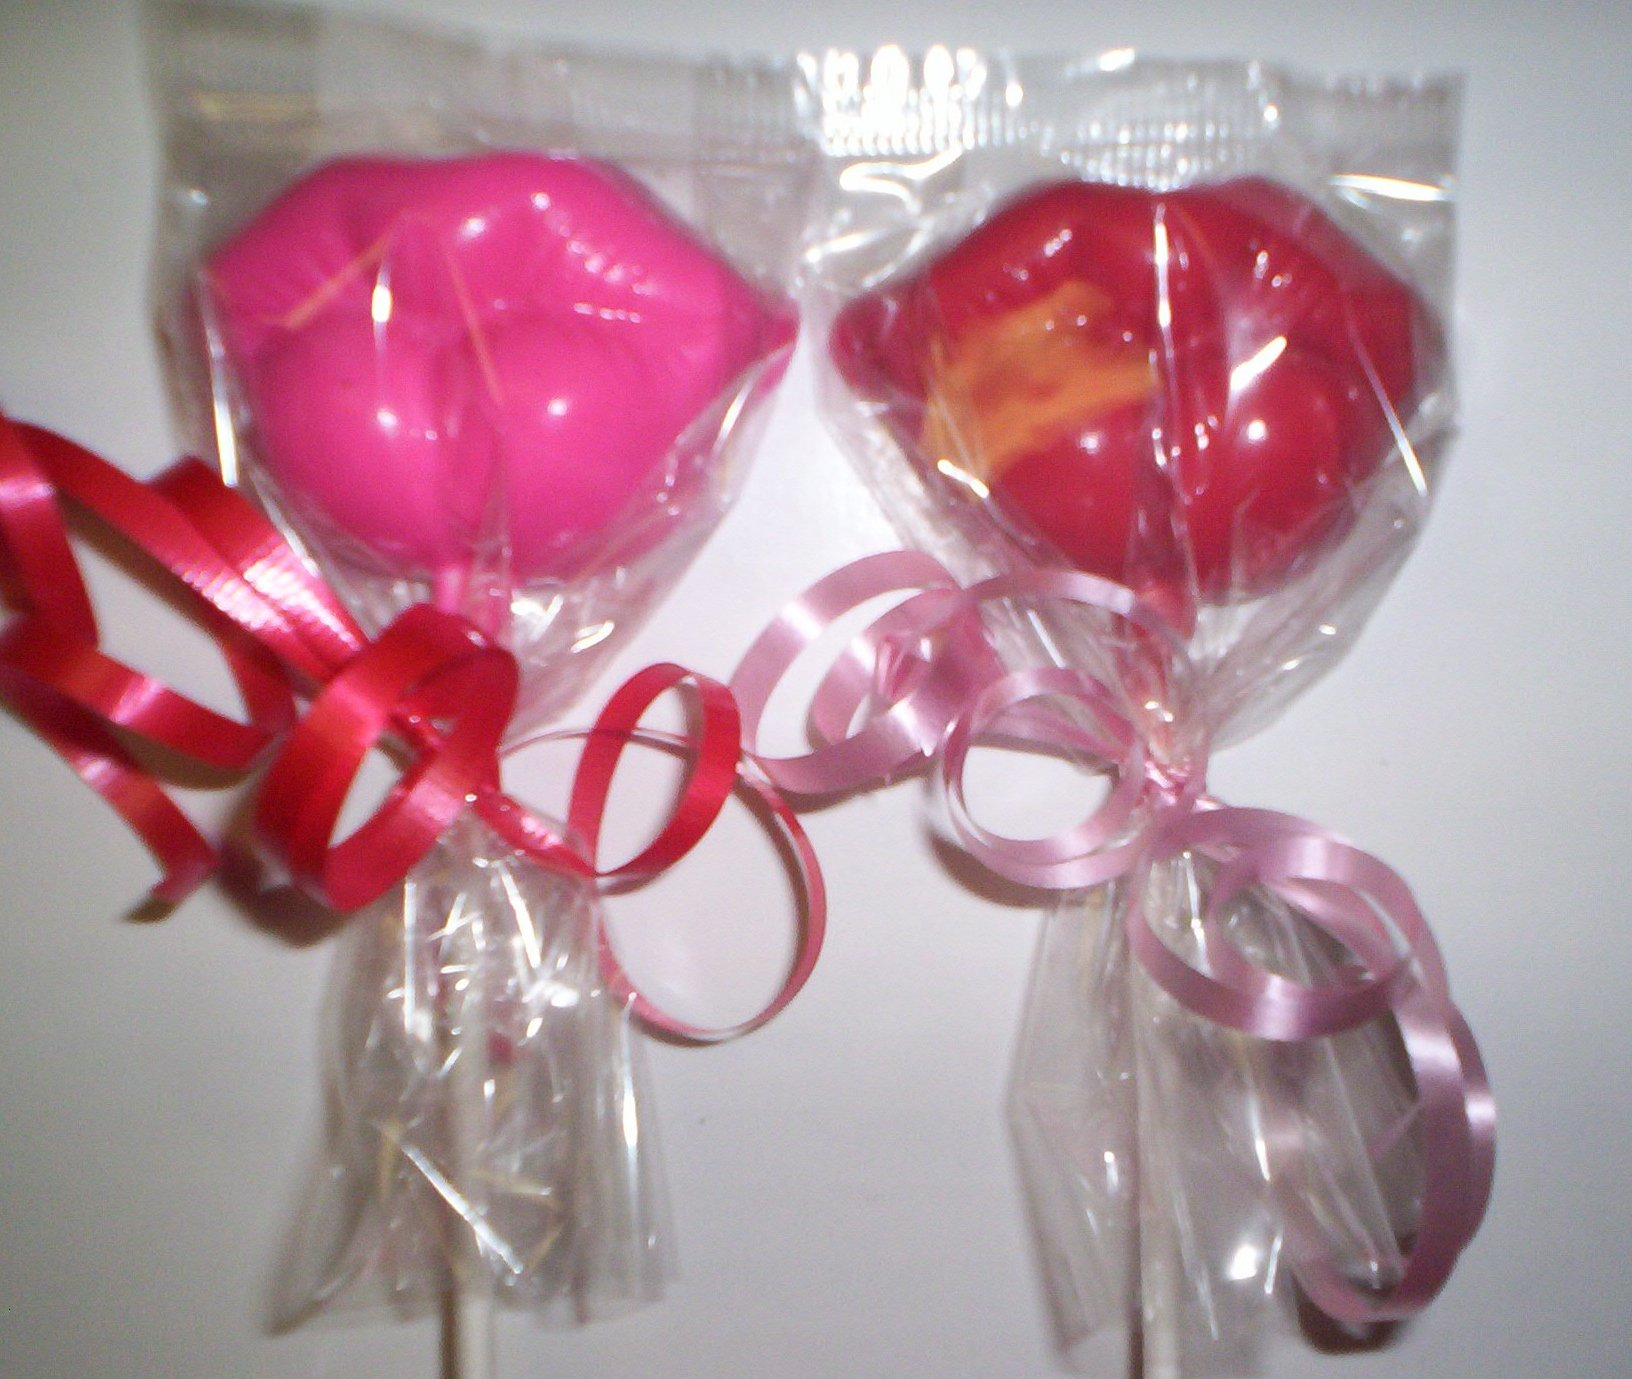 Delicious Creations | Chocolate Party Favors near Chicago - Hickory ...